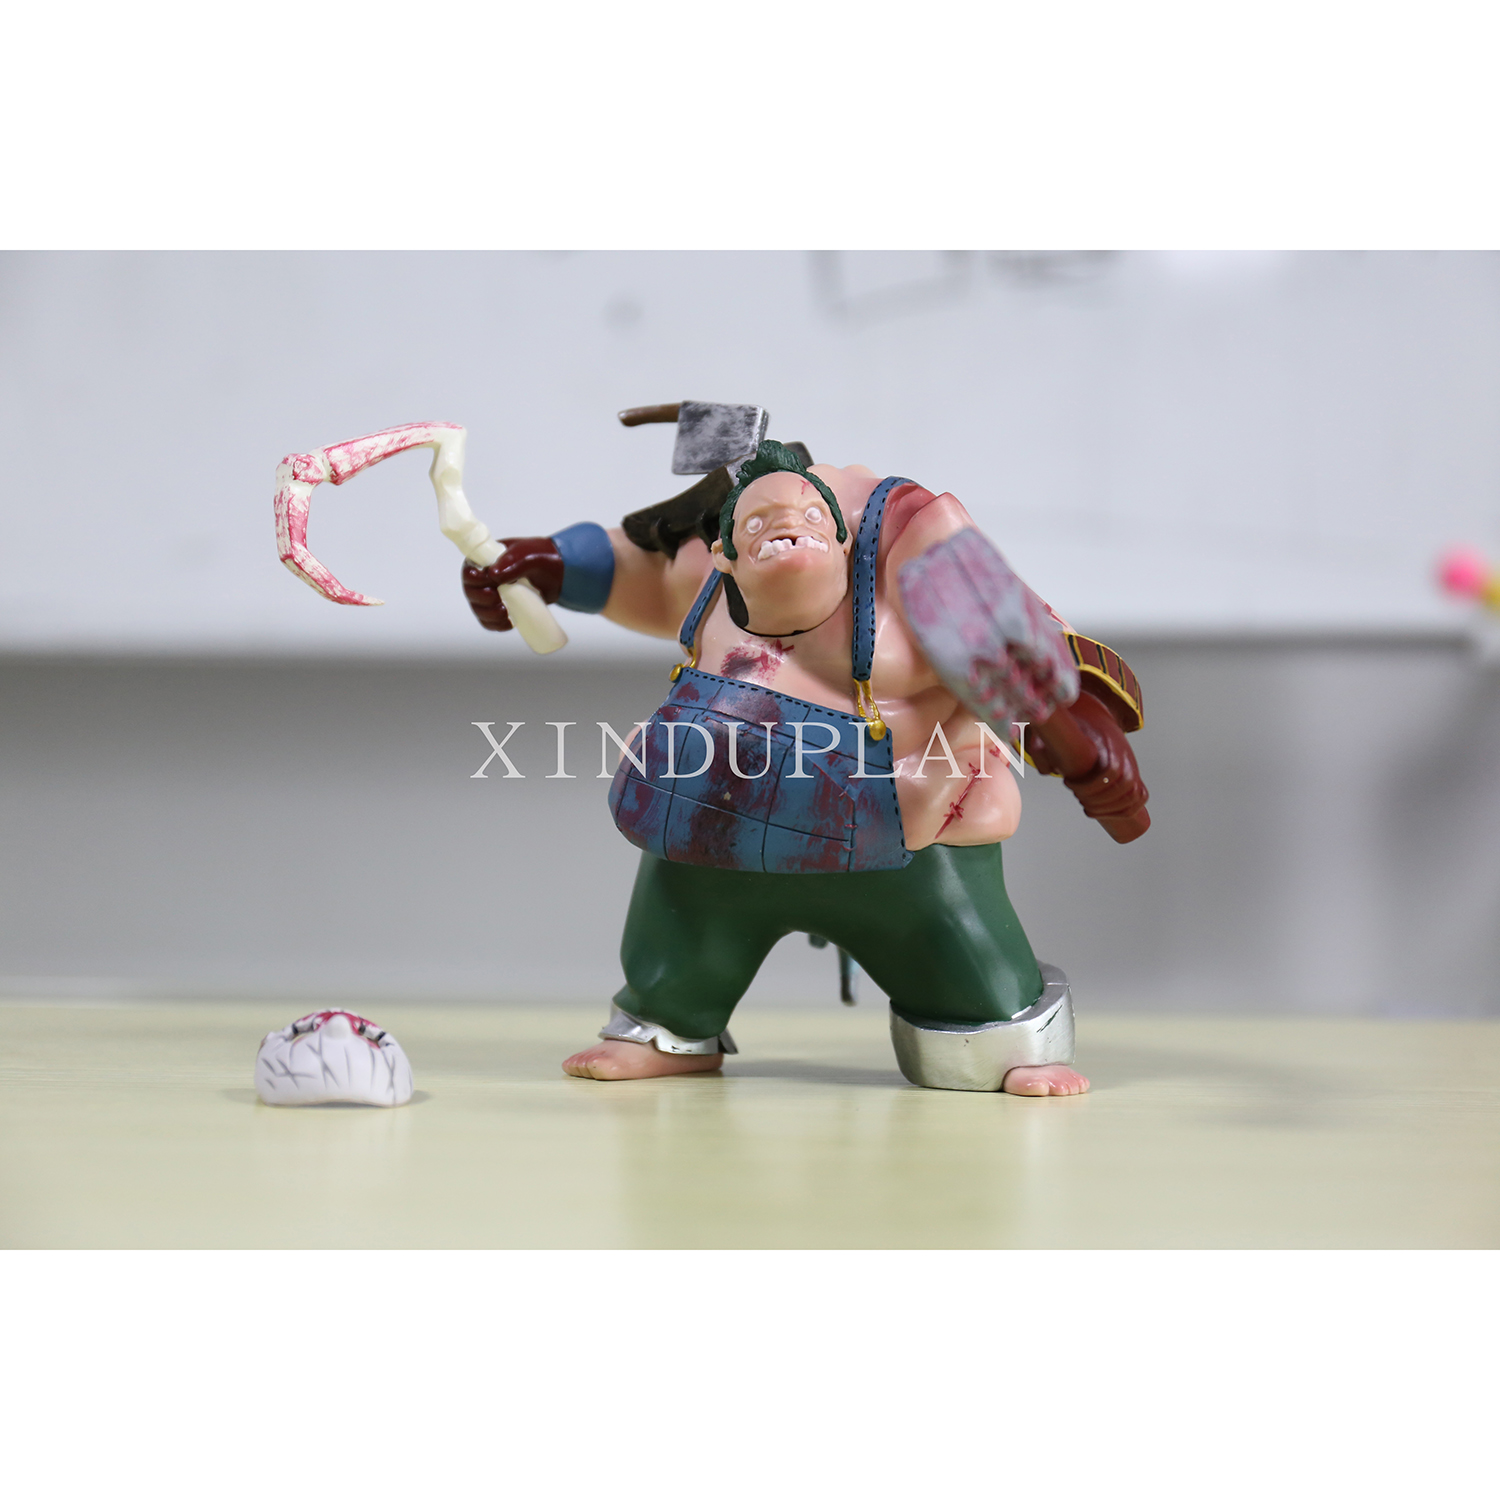 XINDUPLAN Dota 2 Anime Dota2 New Pudge Action Figure Toys Cartoon Game 16cm 1Pcs PVC Kids Gift Collection Model 0187 saintgi street fighter v ken bigboystoys with light action figure game toys pvc 16cm model kids toys collection